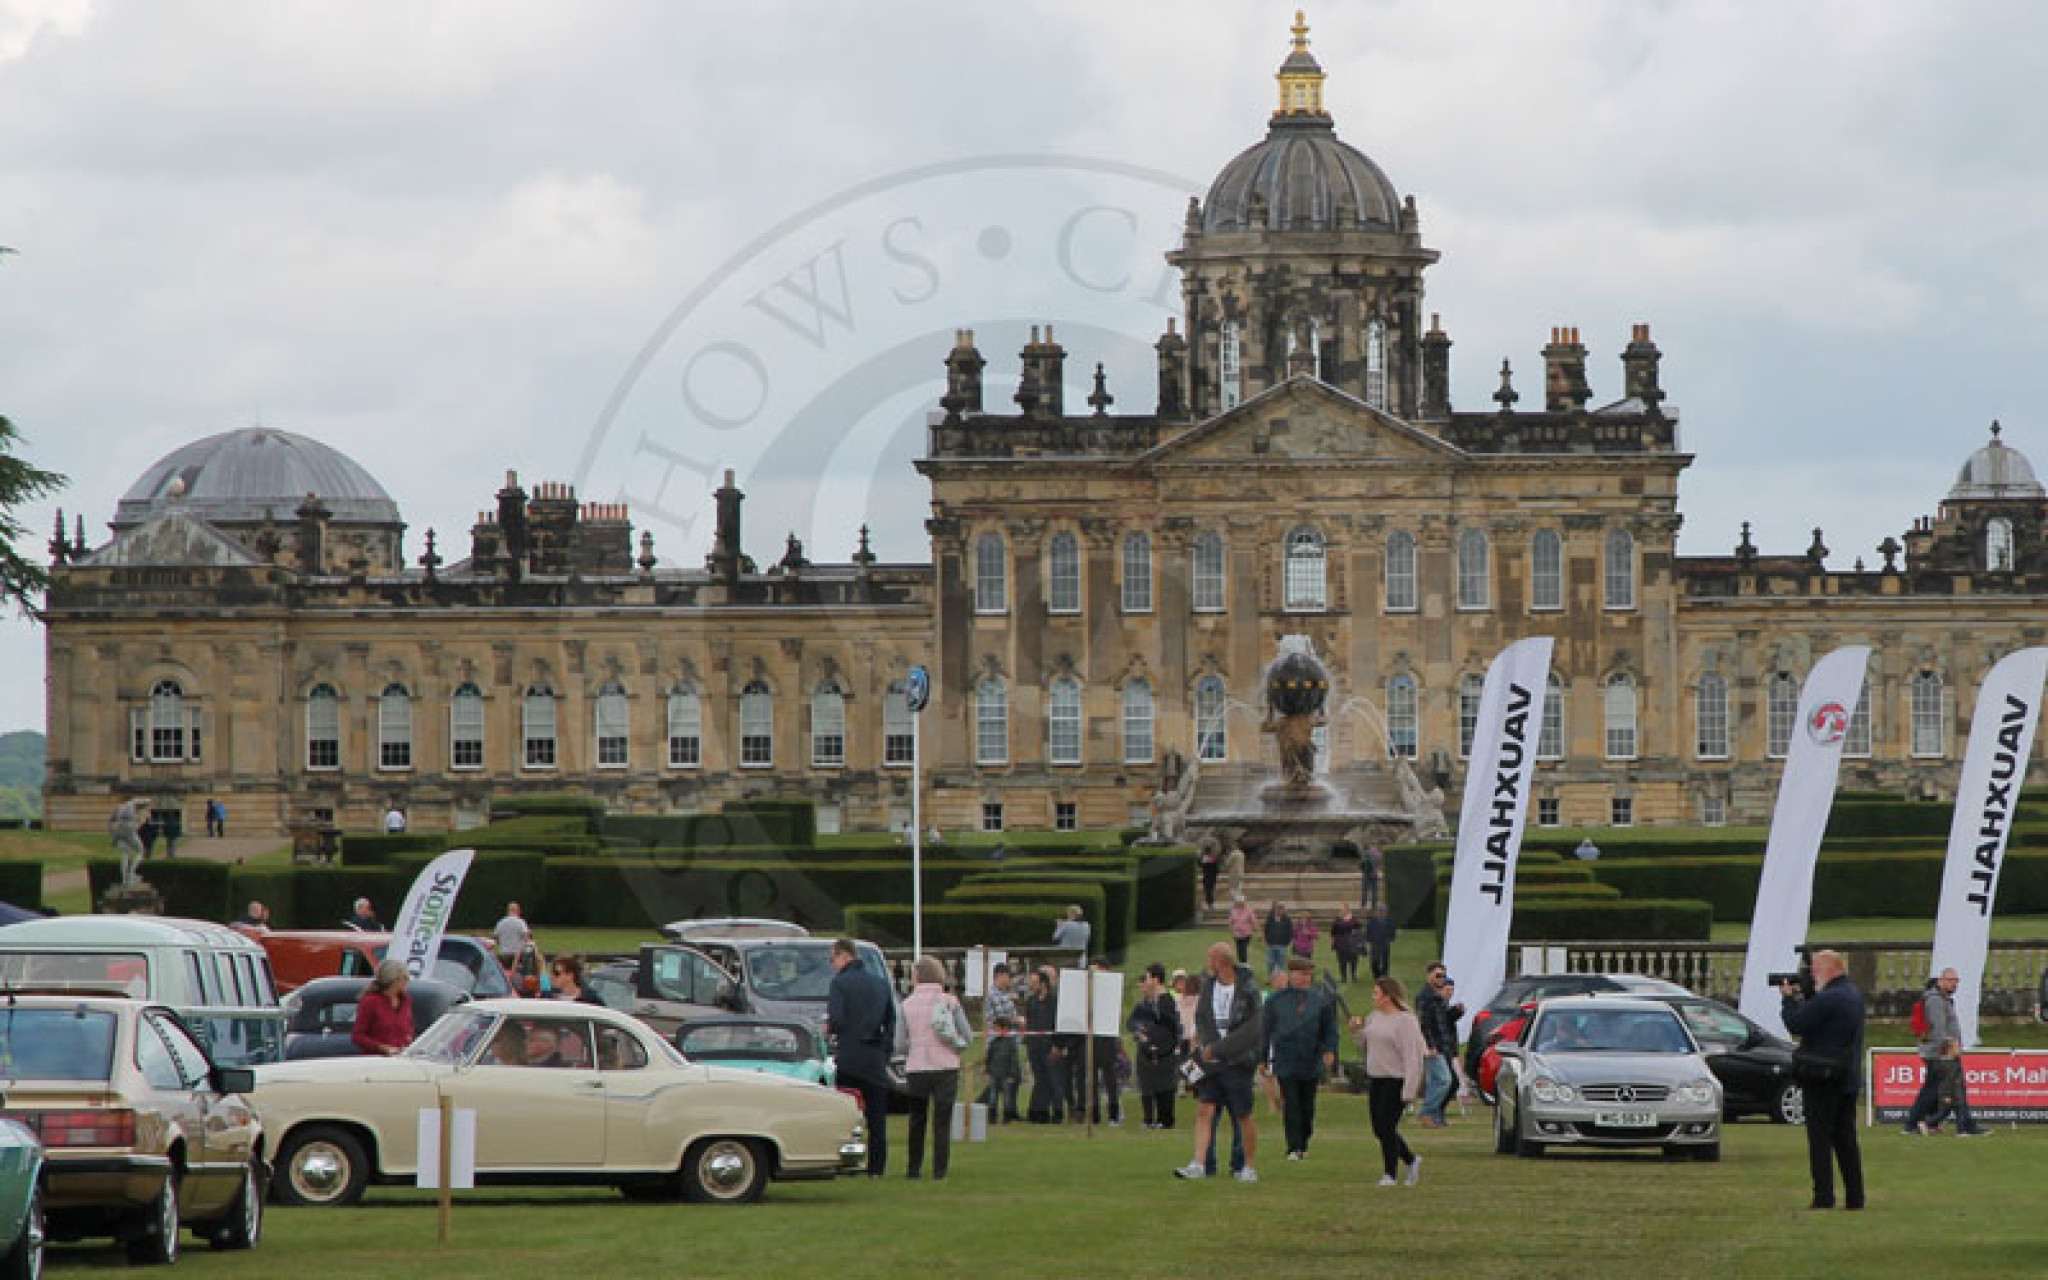 Fathers-Day-Classic-Car-Motor-Show-Castle-Howard-17-June-2018-Gallery-19T (1).jpg